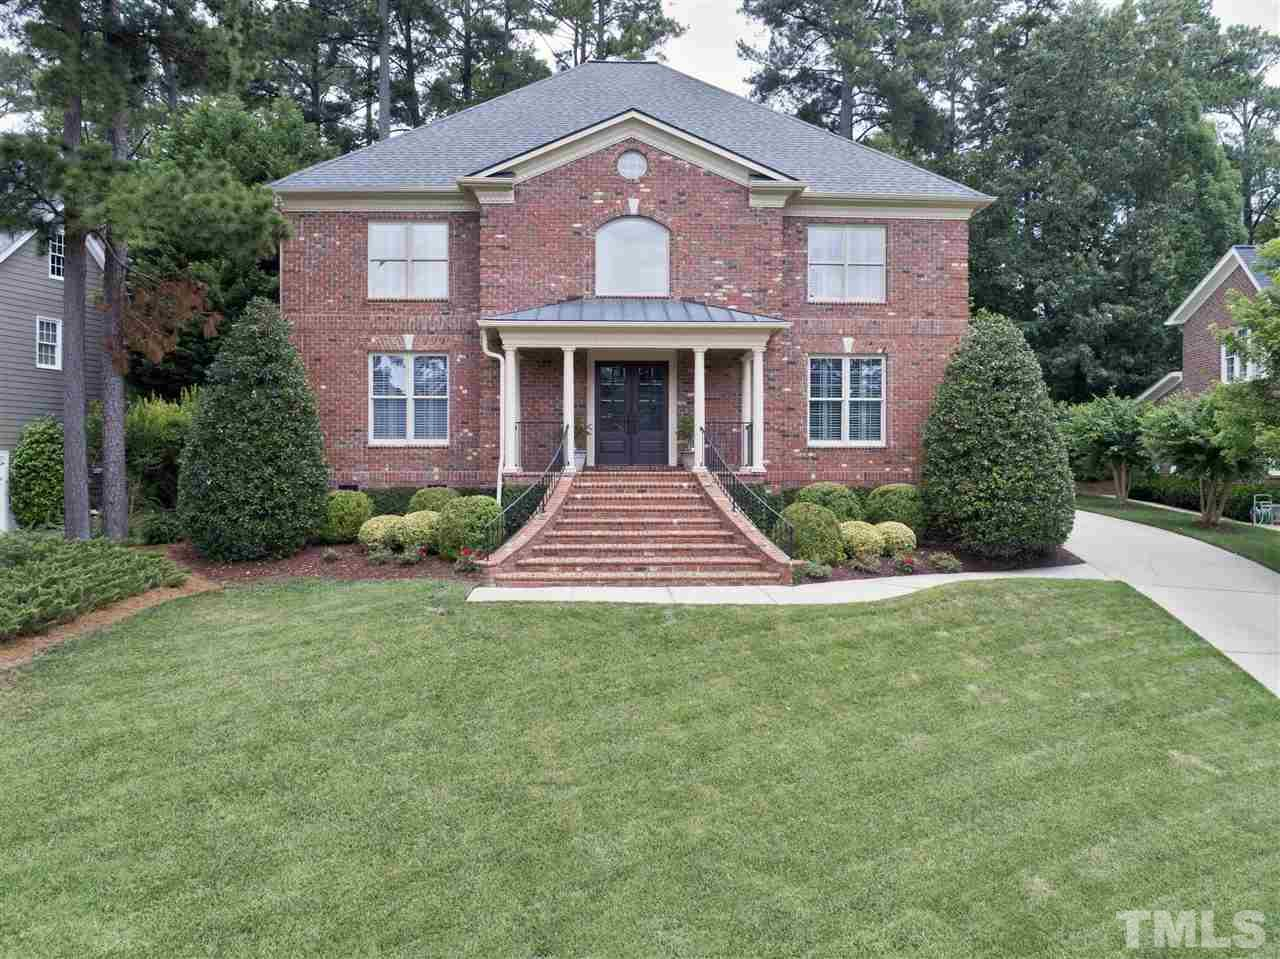 Custom Charleston Style Home in PRESTON.All Brick w/ Rare 3 Car Garage.This Unique home features an Open Floor Plan w/ Soaring Windows.Grand Foyer has Updated Staircase.Chef's Kitchen features Soapstone CTops,Island,SS Gas Range,Glass Cabs & Wine Fridge.Spac Bfast Rm Opens to 2 Story FR w/ Fireplace & Built Ins.Sunroom/Office on Main.Master Retreat w/HWoods,HisHerWICs,Updated Bath.Sec BRs w/ Private BA Access.Bonus on 3rd has Full BA & can be 5th BR.Charleston Courtyard Patio & Garden.Mins to RTP/Airport.